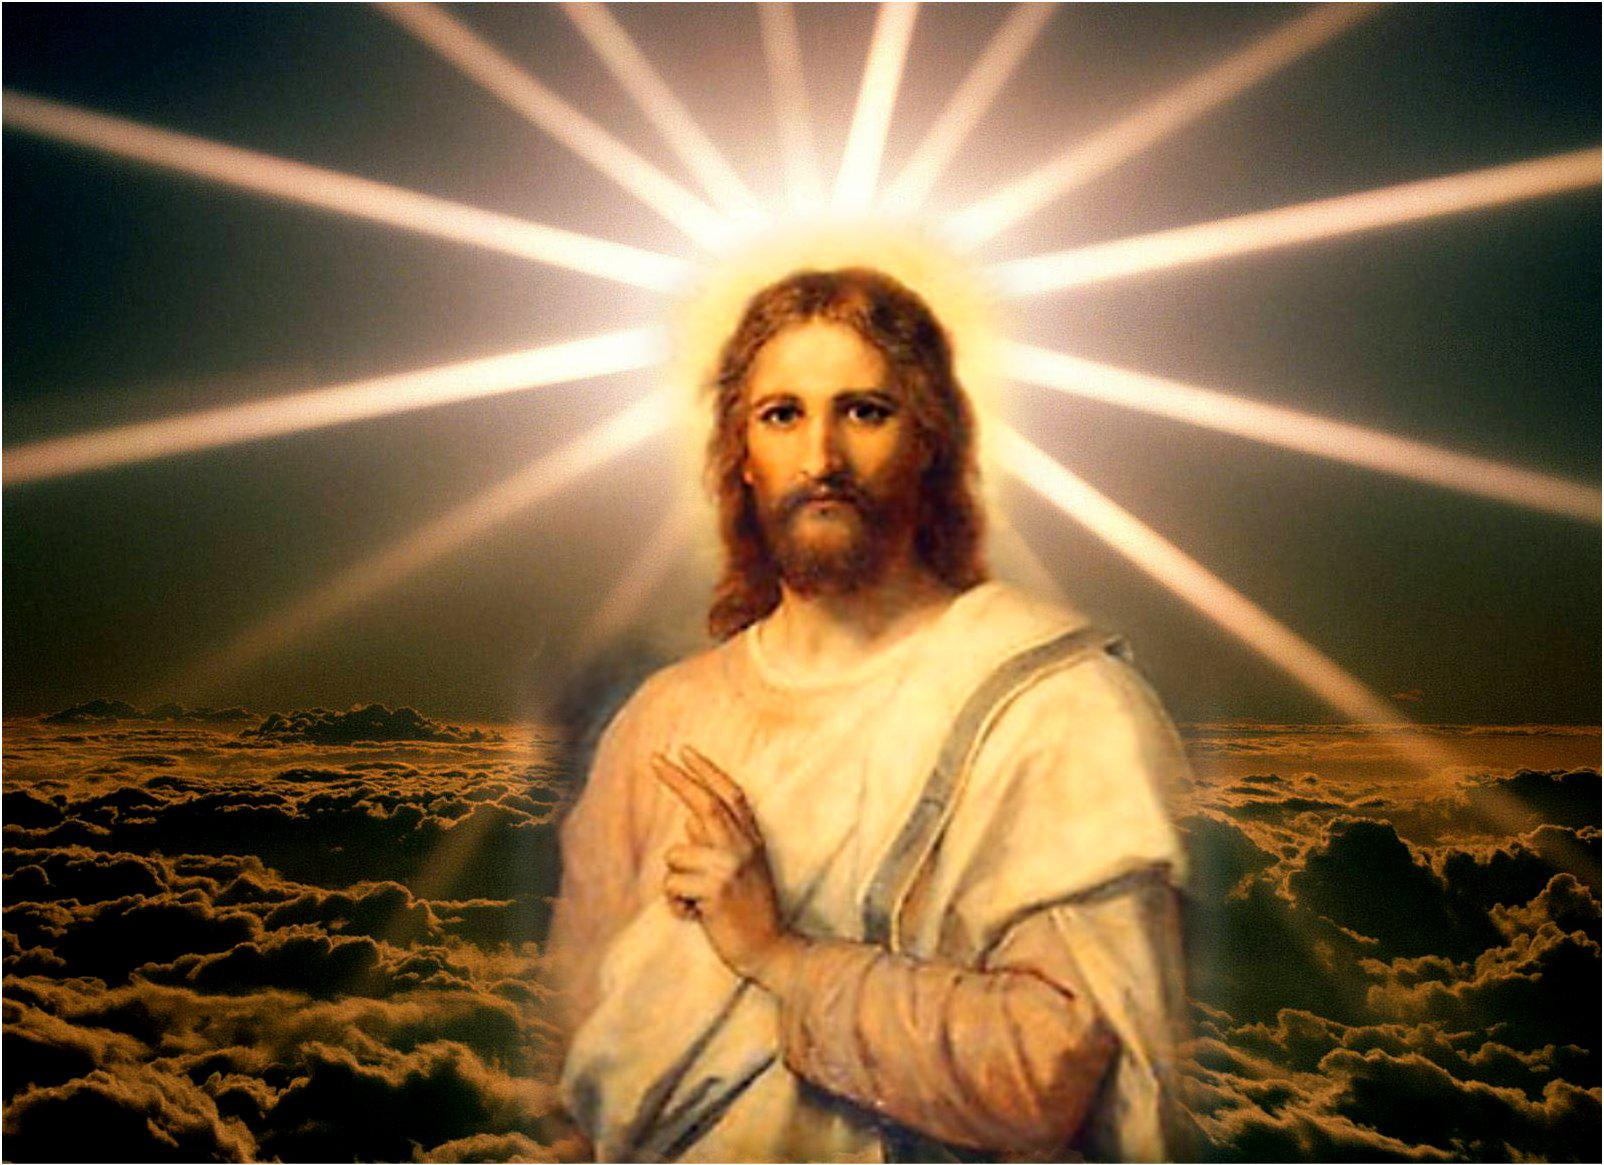 Jesus Christ Wallpapers 1604x1165